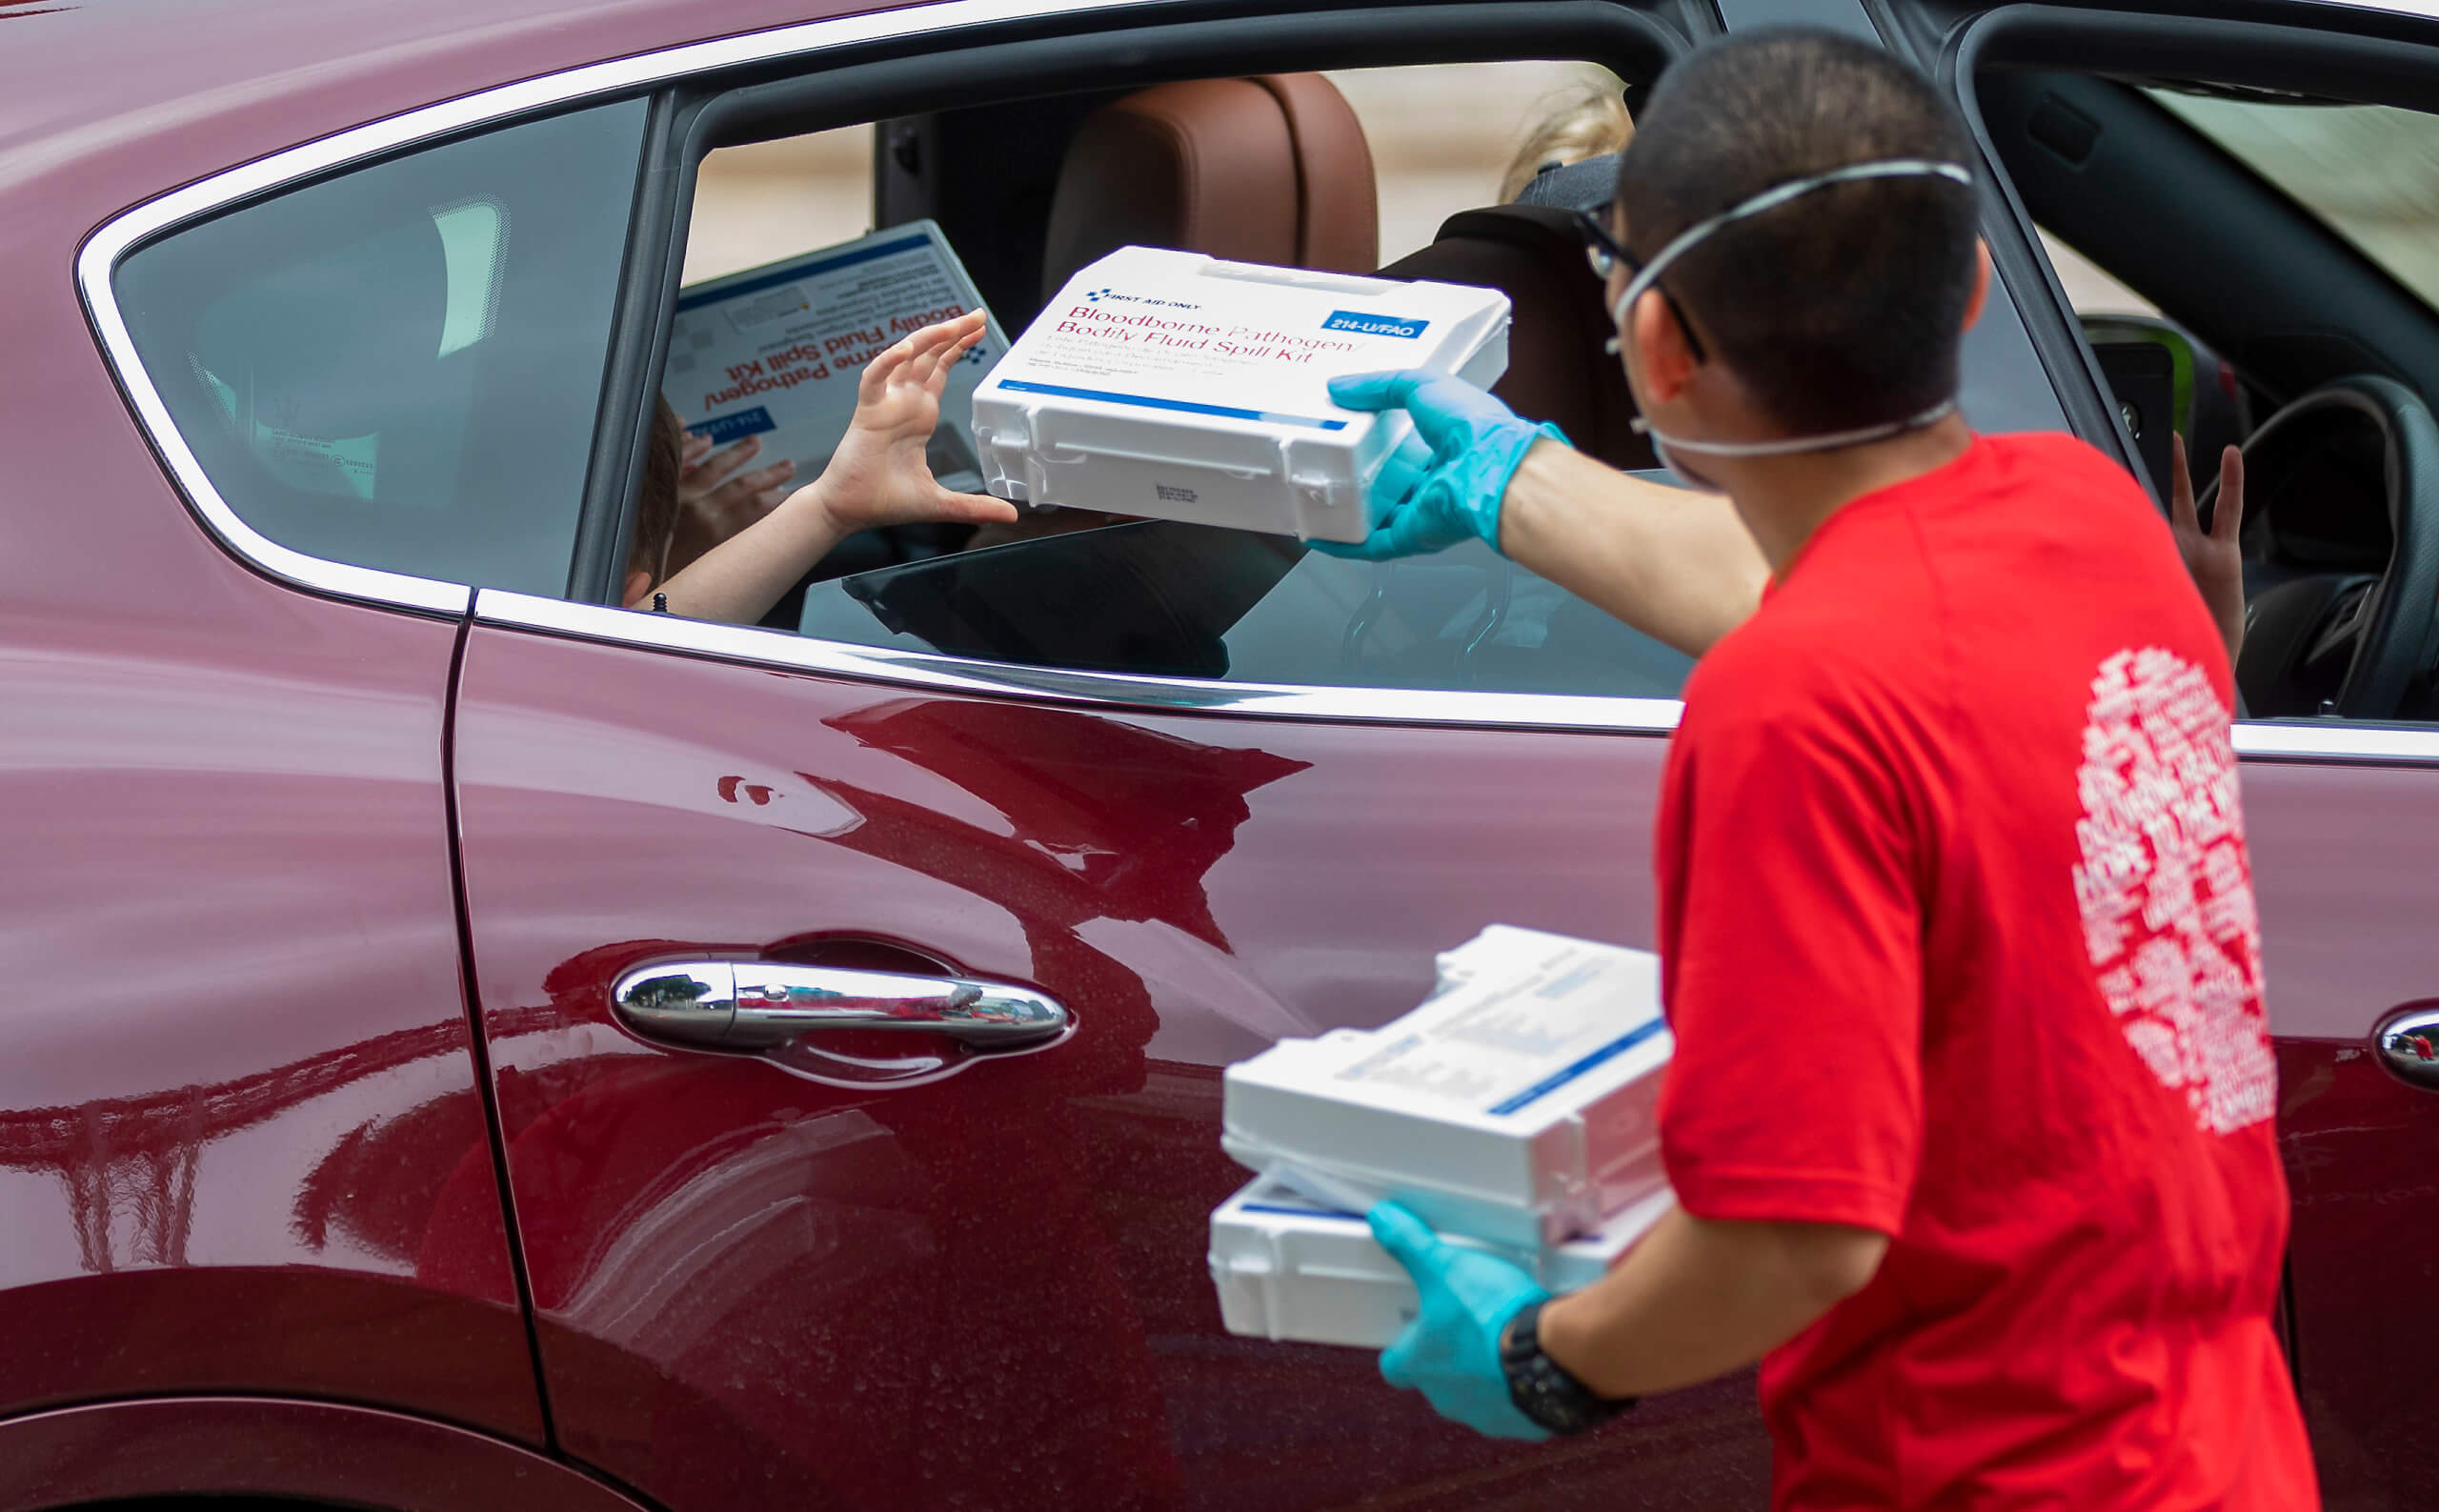 Project C.U.R.E. volunteer Ray Wang accepts a body fluid spill kit from a resident during a PPE donation drive on Wednesday, April 8, 2020, in Houston.